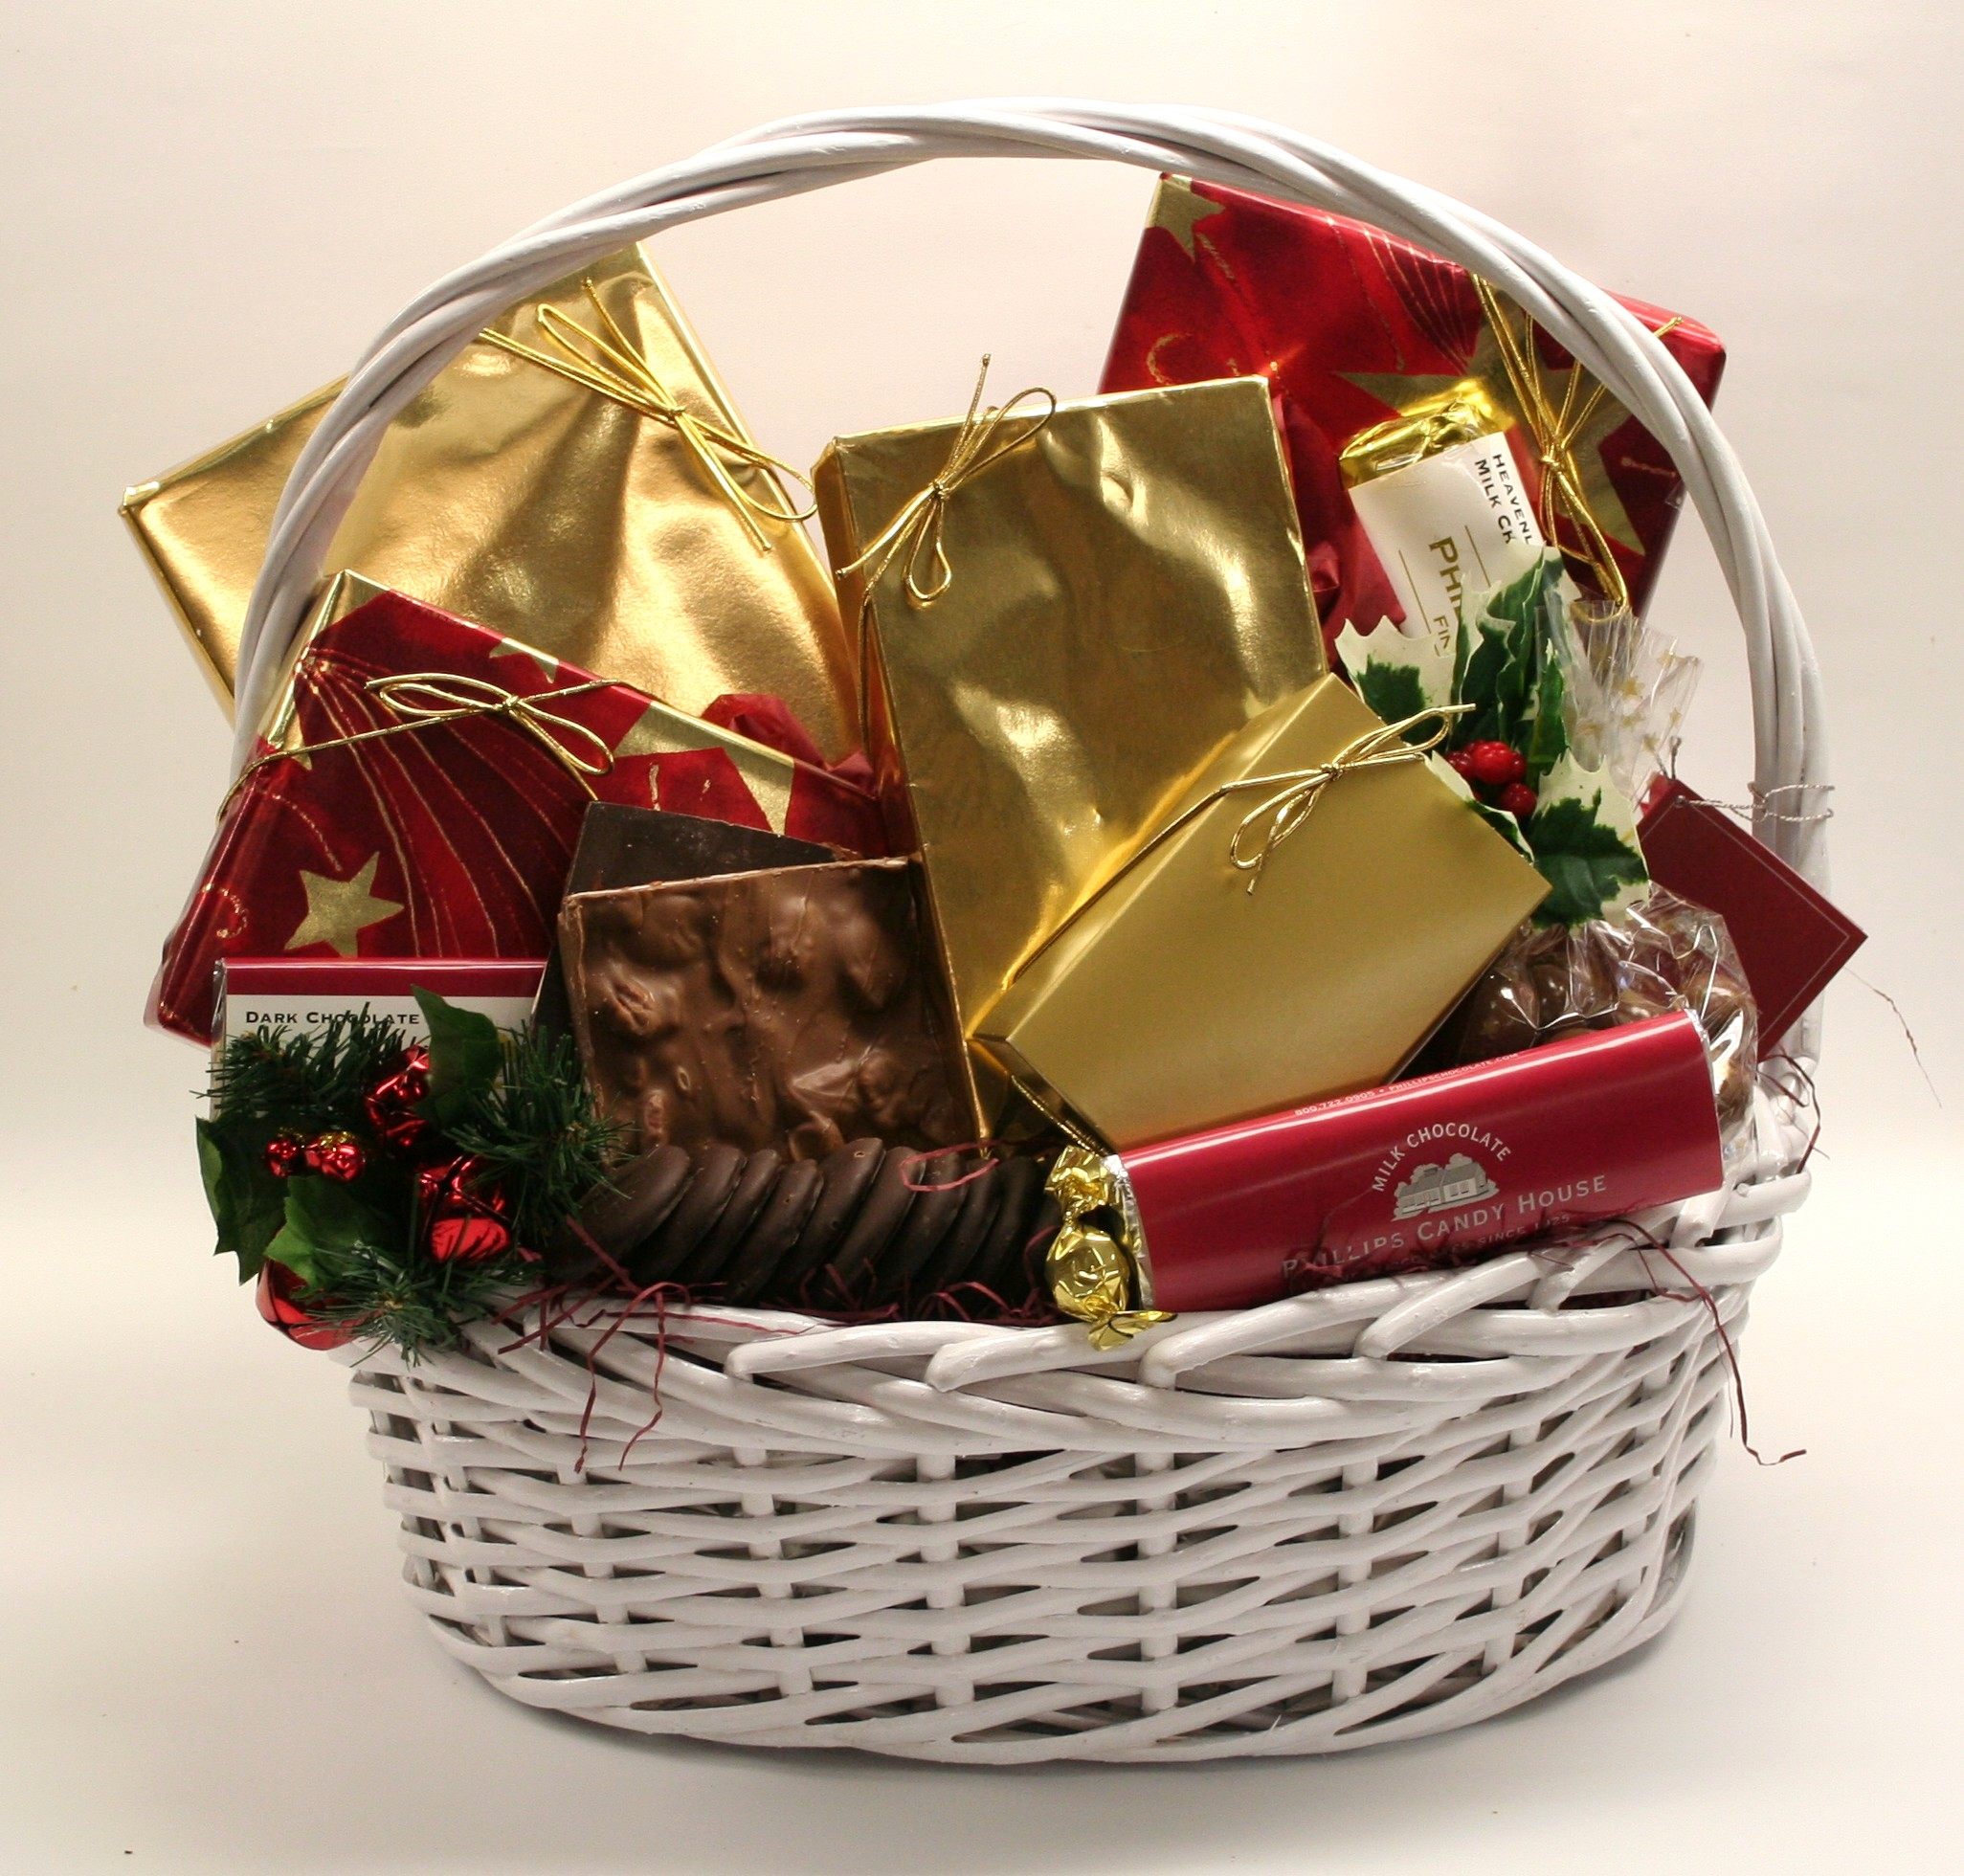 Chocolate Basket Wallpapers High Quality